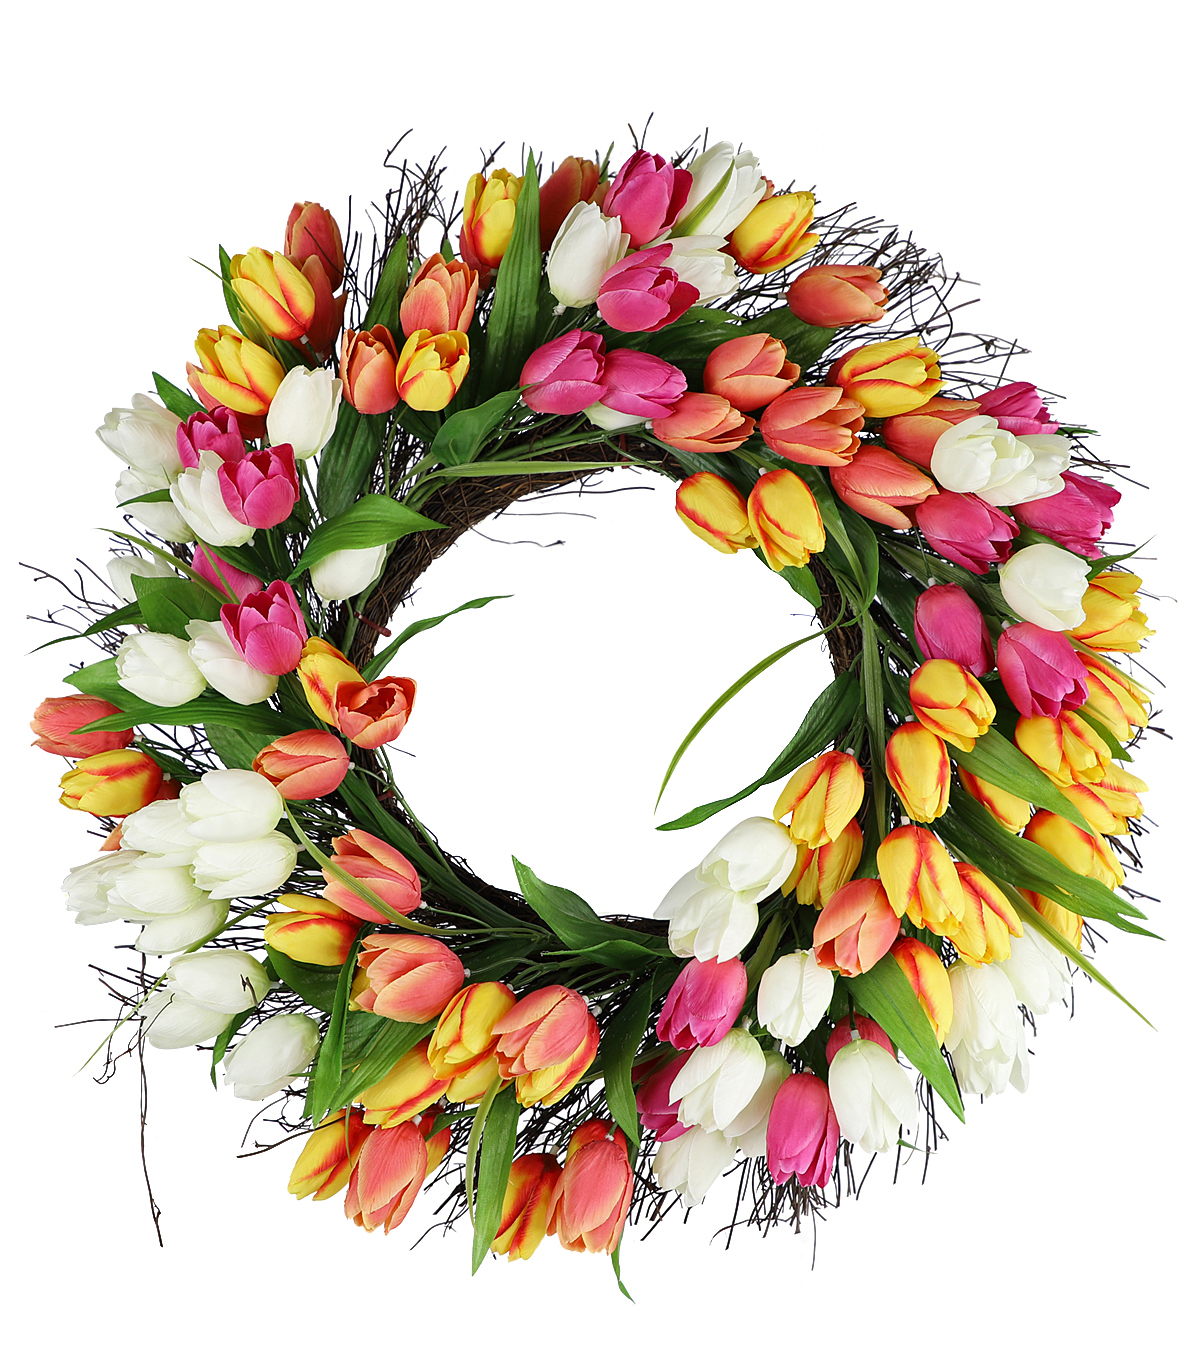 Fresh Picked Spring 22'' Tulip & Grapevine Wreath Multicolored                      Fresh Picked Spring 22'' Tulip & Grapevine Wreath Multicolored by Fresh Picked Spring